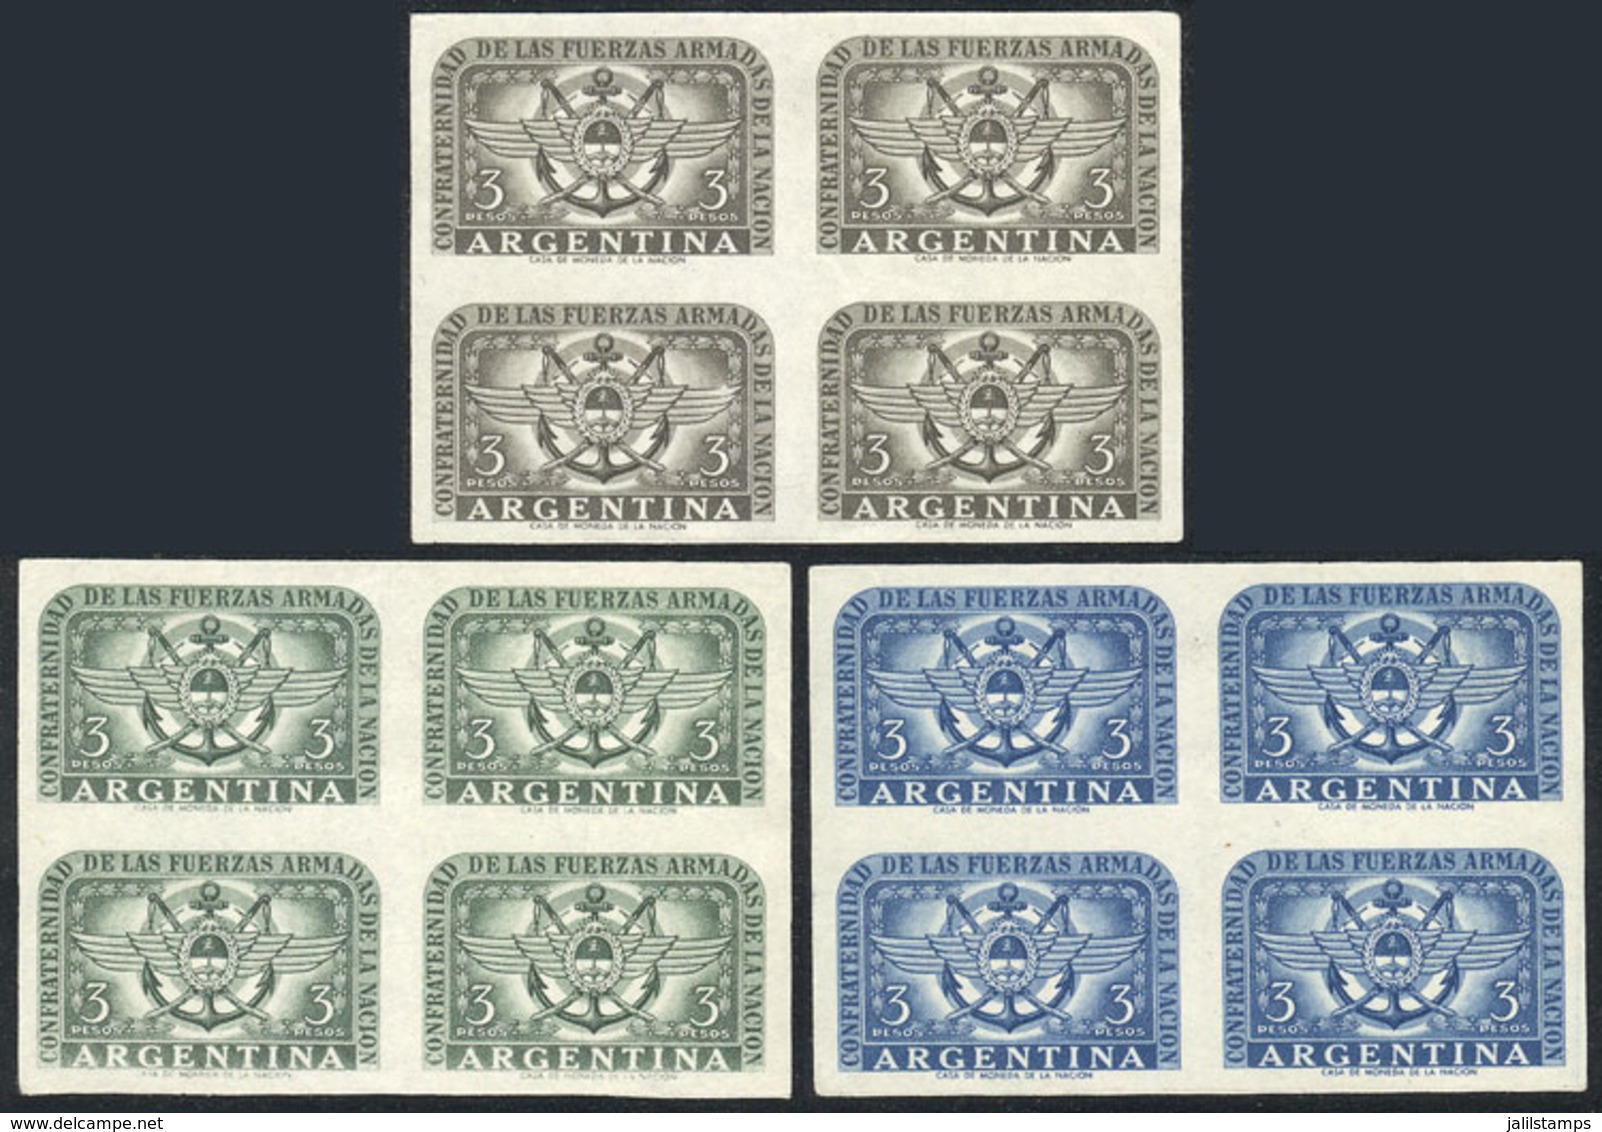 ARGENTINA: GJ.1061, 1955 Armed Forces, PROOFS On Ordinary Paper, BLOCKS OF 4 In The 3 Known Colors, VF Quality! - Argentina